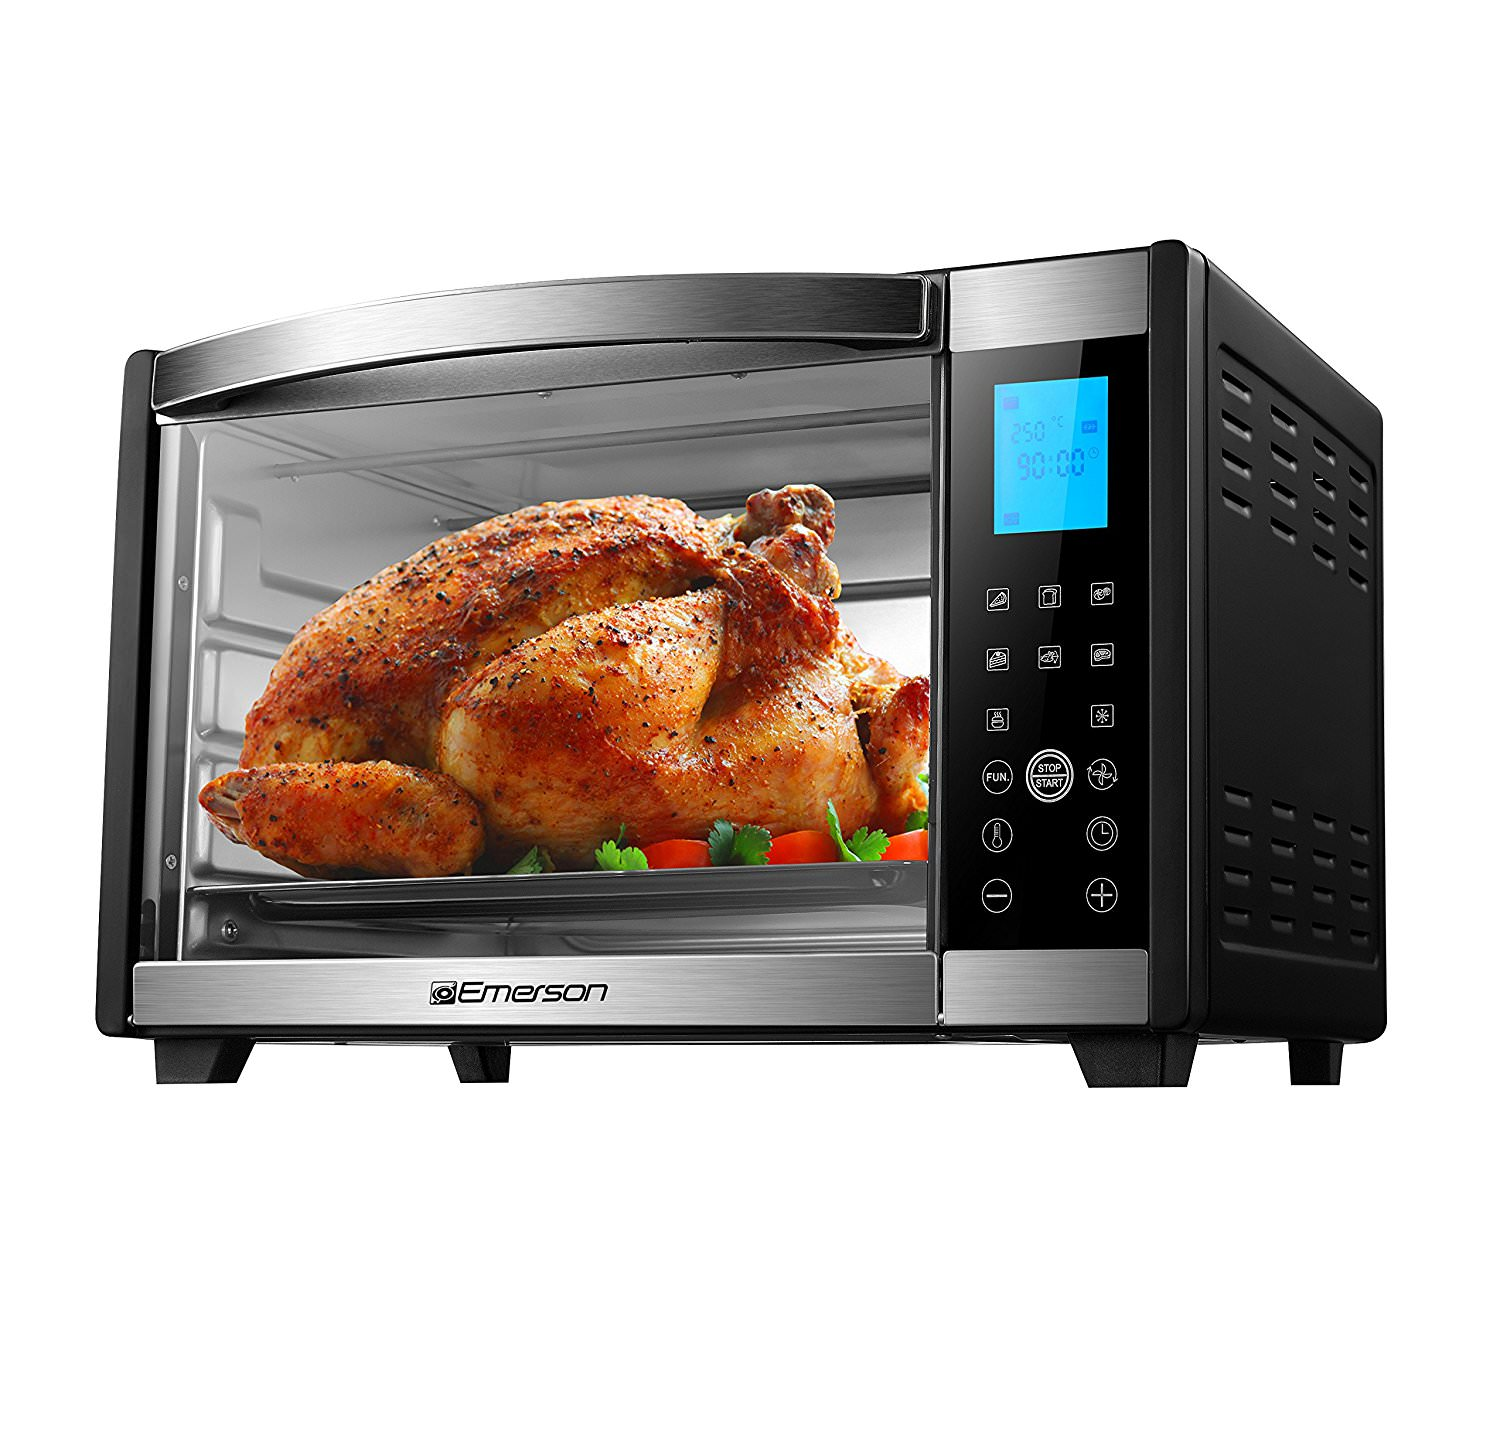 Emerson 6-Slice Convection & Rotisserie Countertop Toaster Oven with Digital Touch Control in Stainless Steel, ER101004